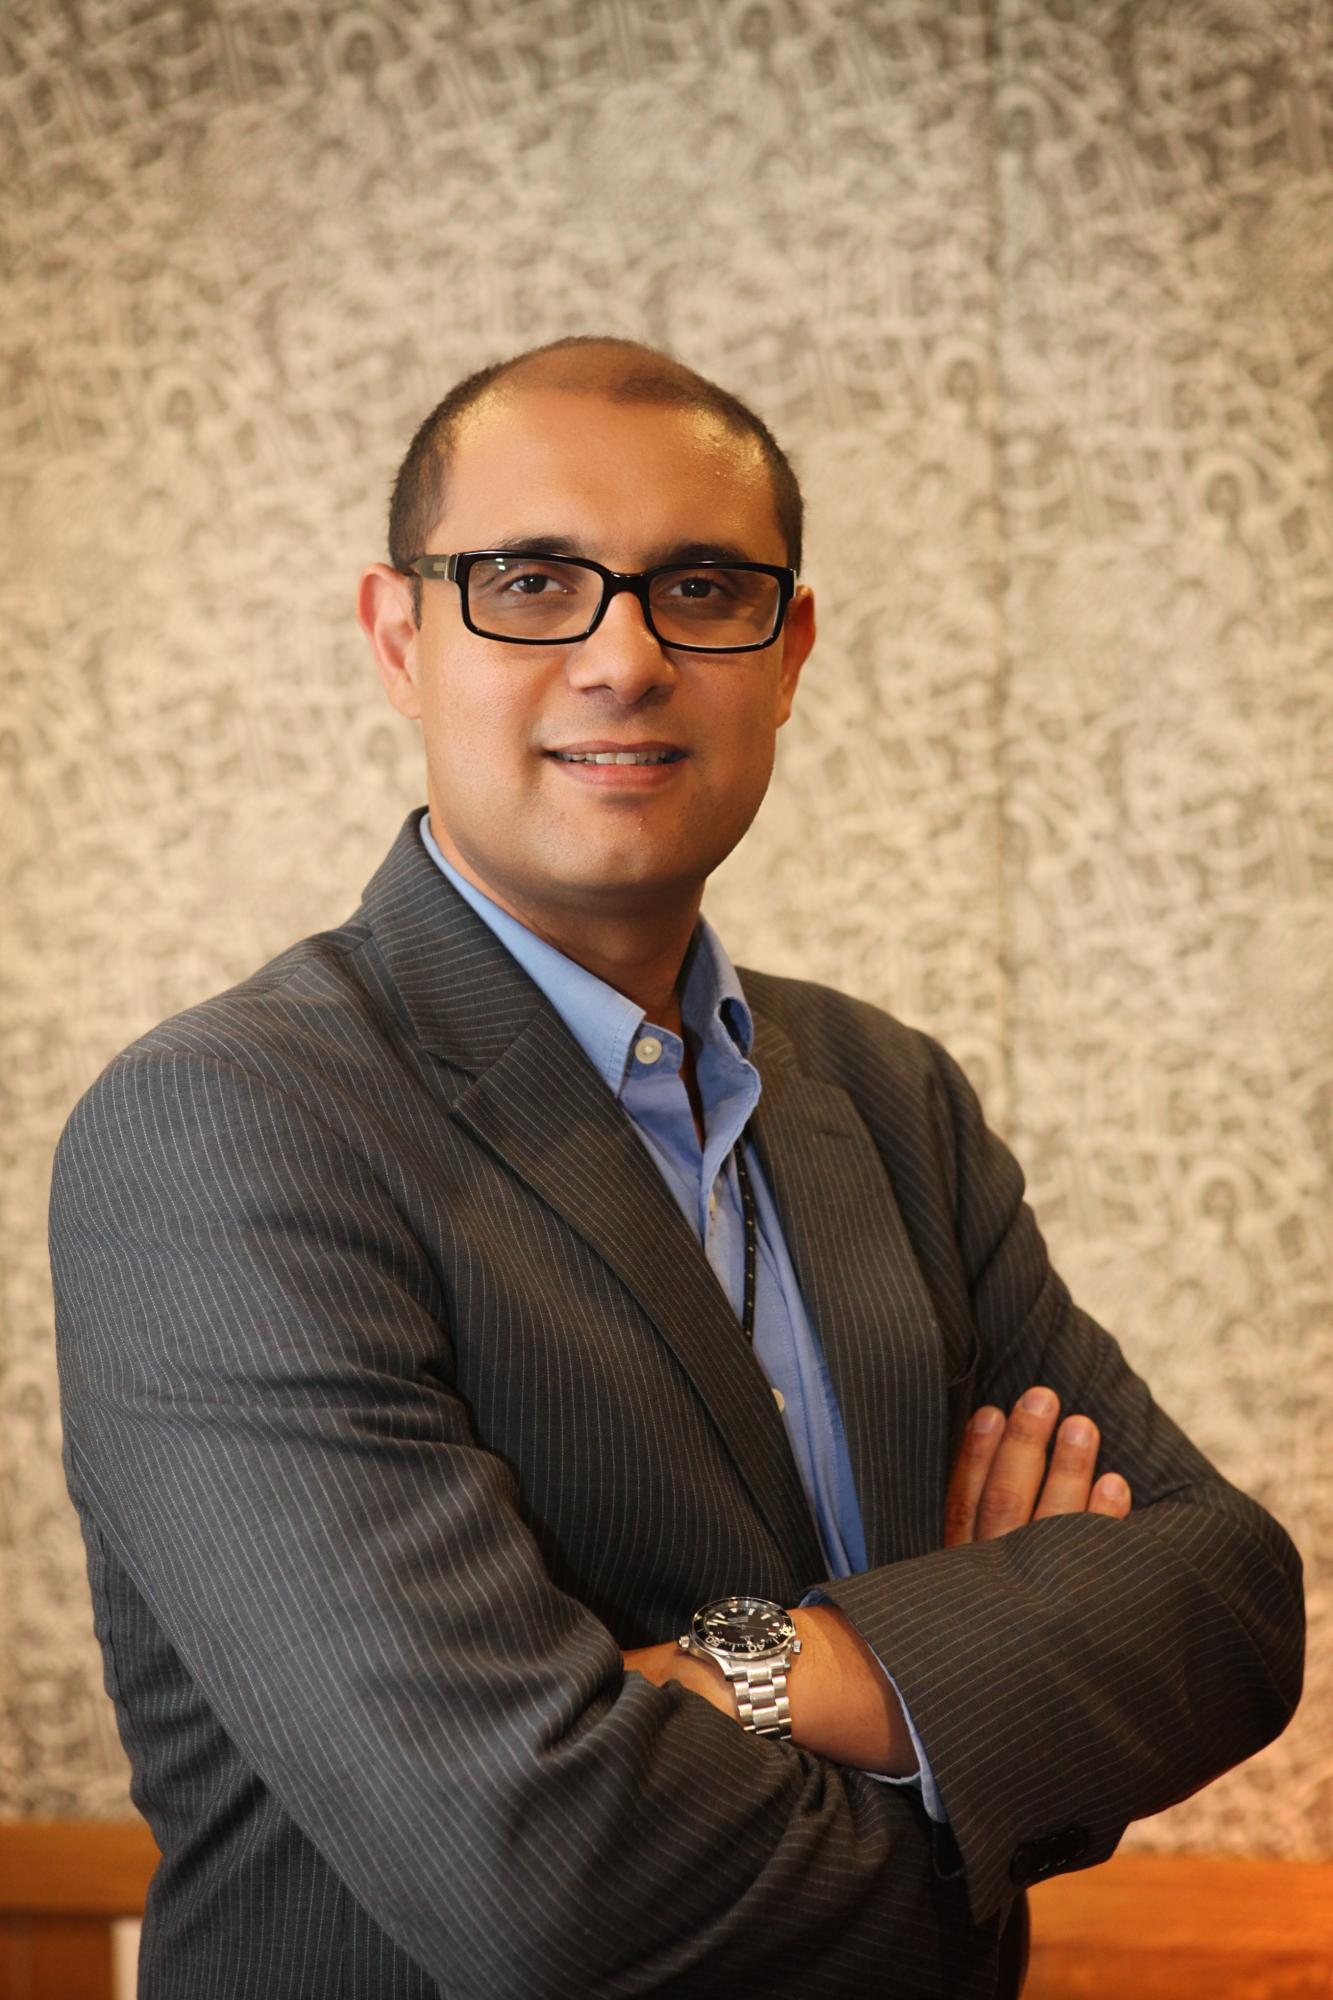 Ahmed Tolba is the new Associate Provost for Strategic Enrollment Management